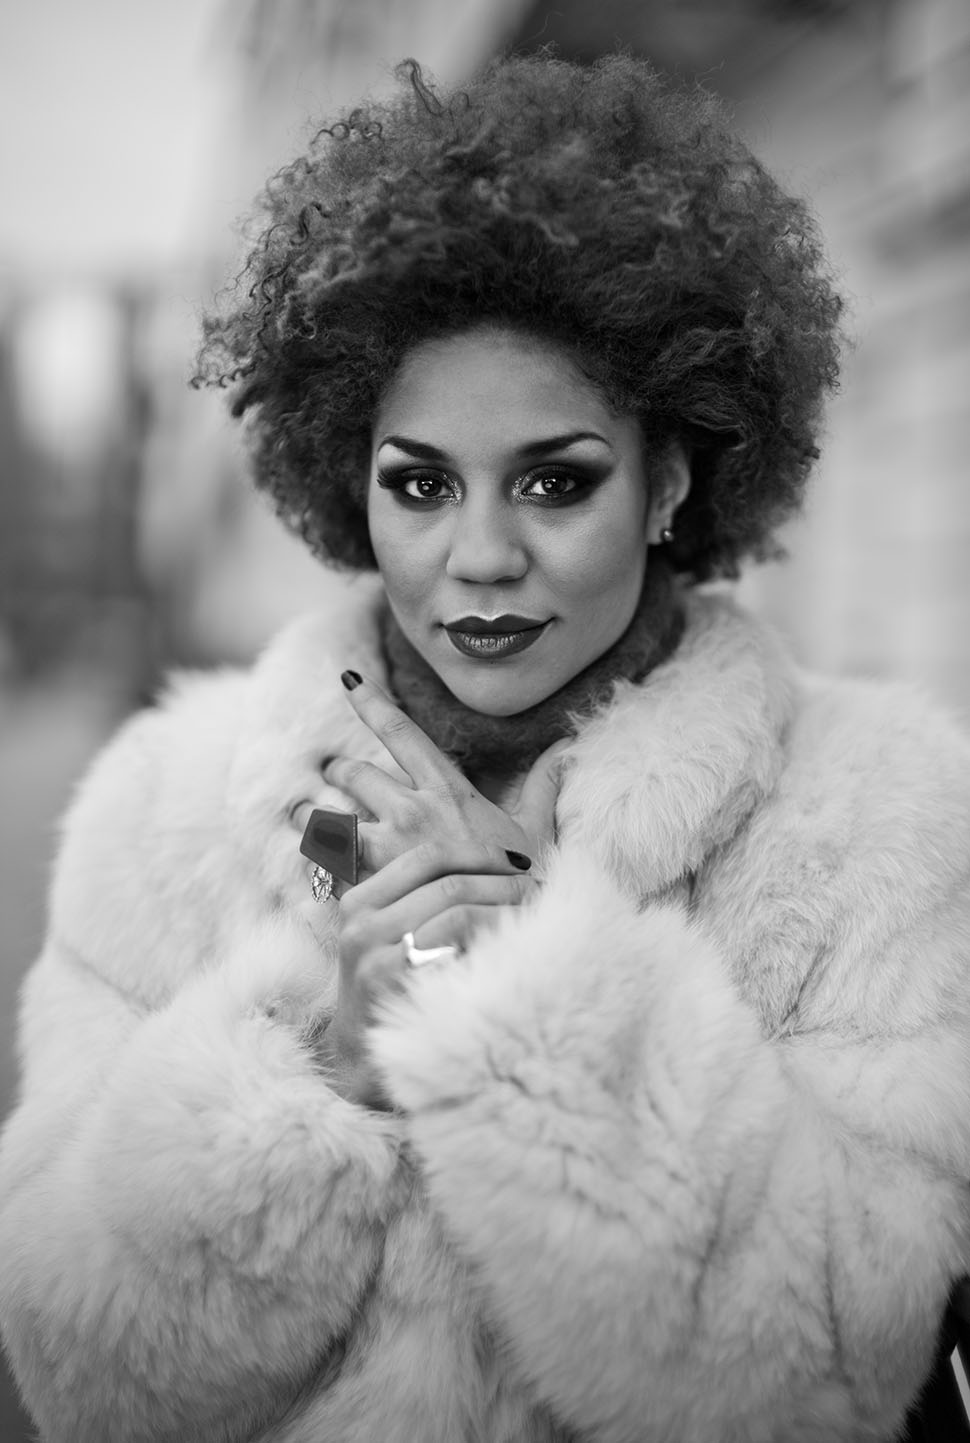 American actress and singer Joy Villa. Makeup by Jack Jack Tyson, jewrrelry by Creative Solutions Gallery. © 2013 Thorsten Overgaard. Leica M Monochrom with Leica 50mm Noctilux-M ASPH f/0.95